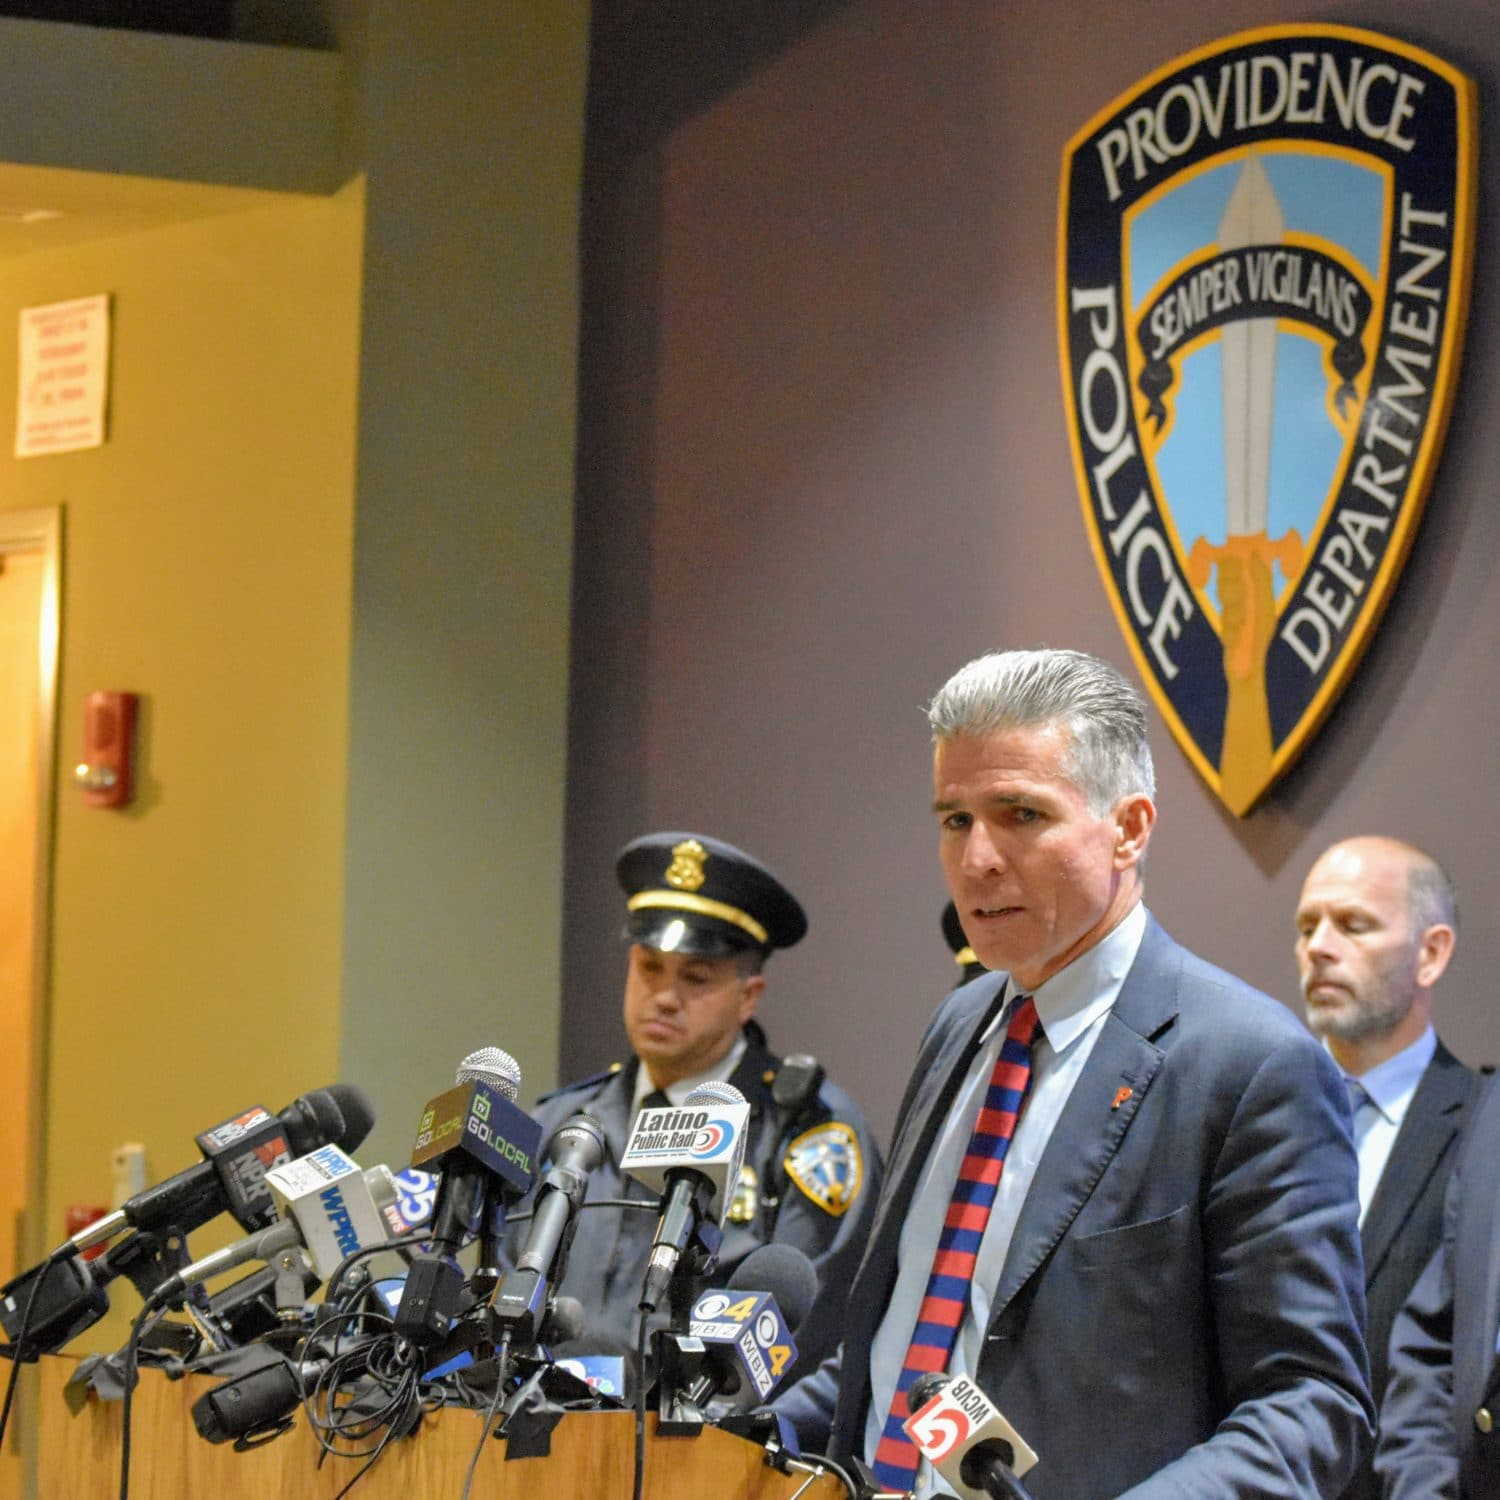 2017-11-10 PVD Public Safety press conference 01